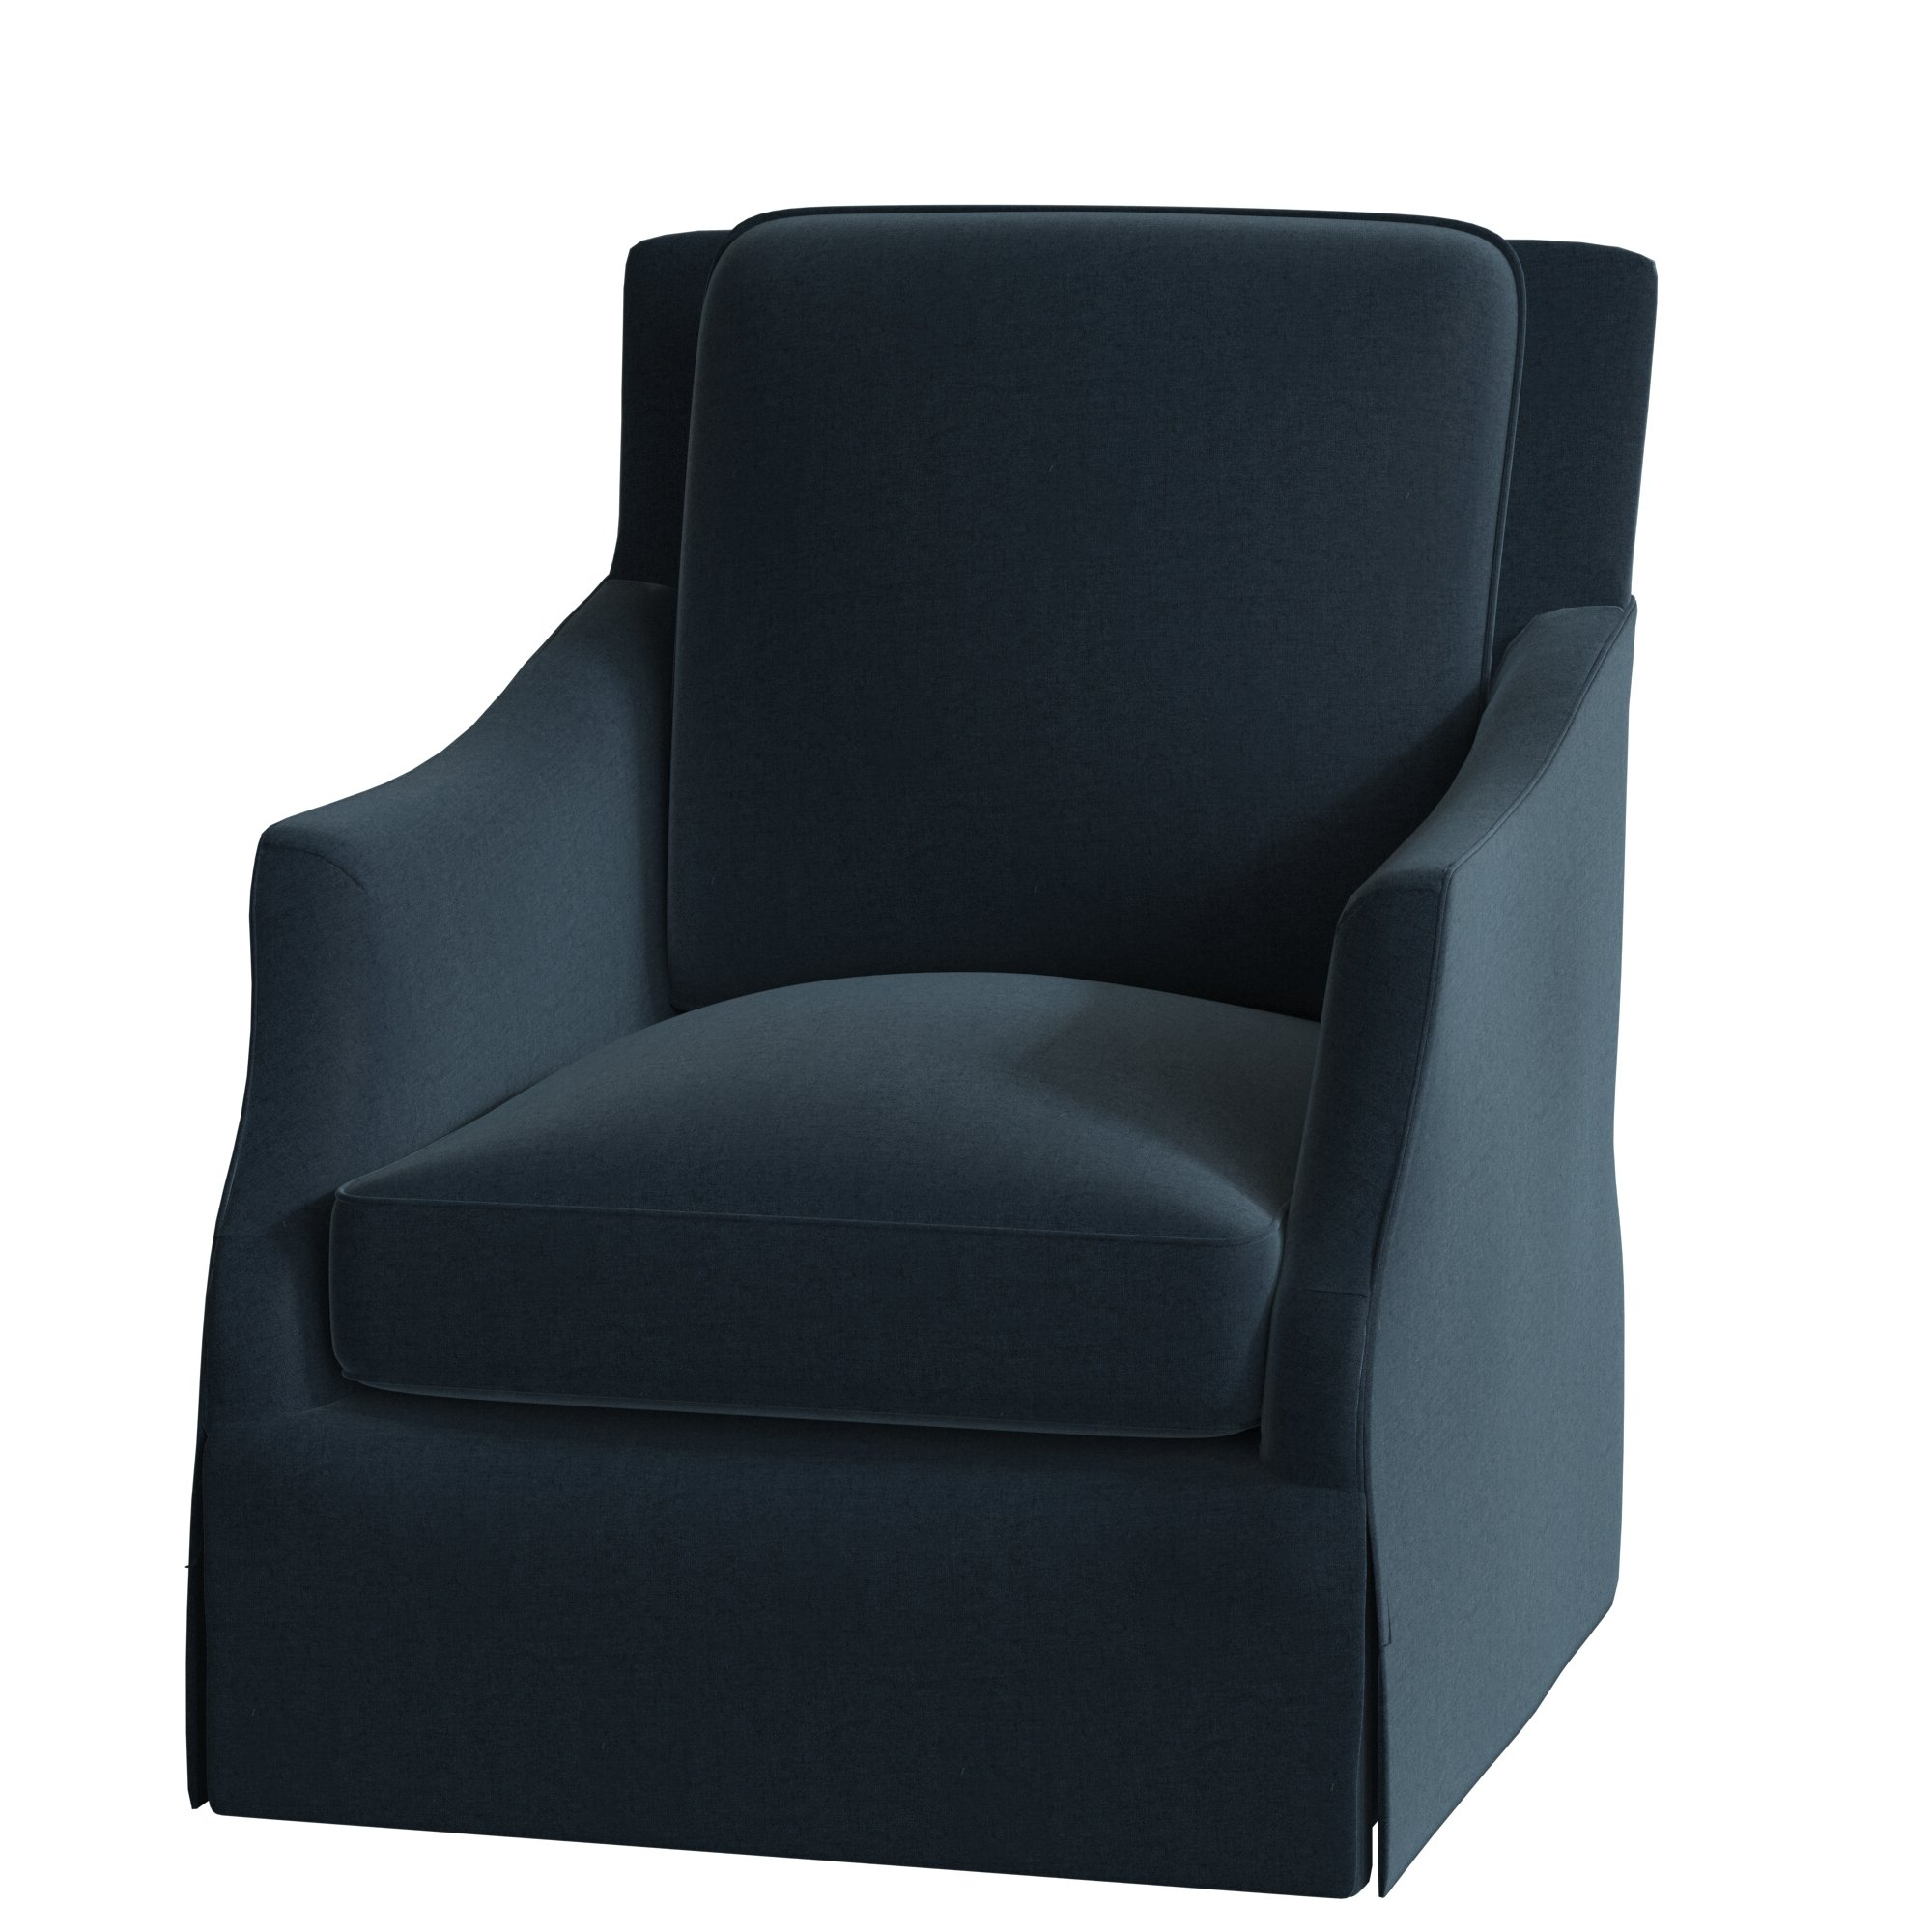 2019 Sabine Swivel Armchair Inside Ronald Polyester Blend Armchairs (View 15 of 20)